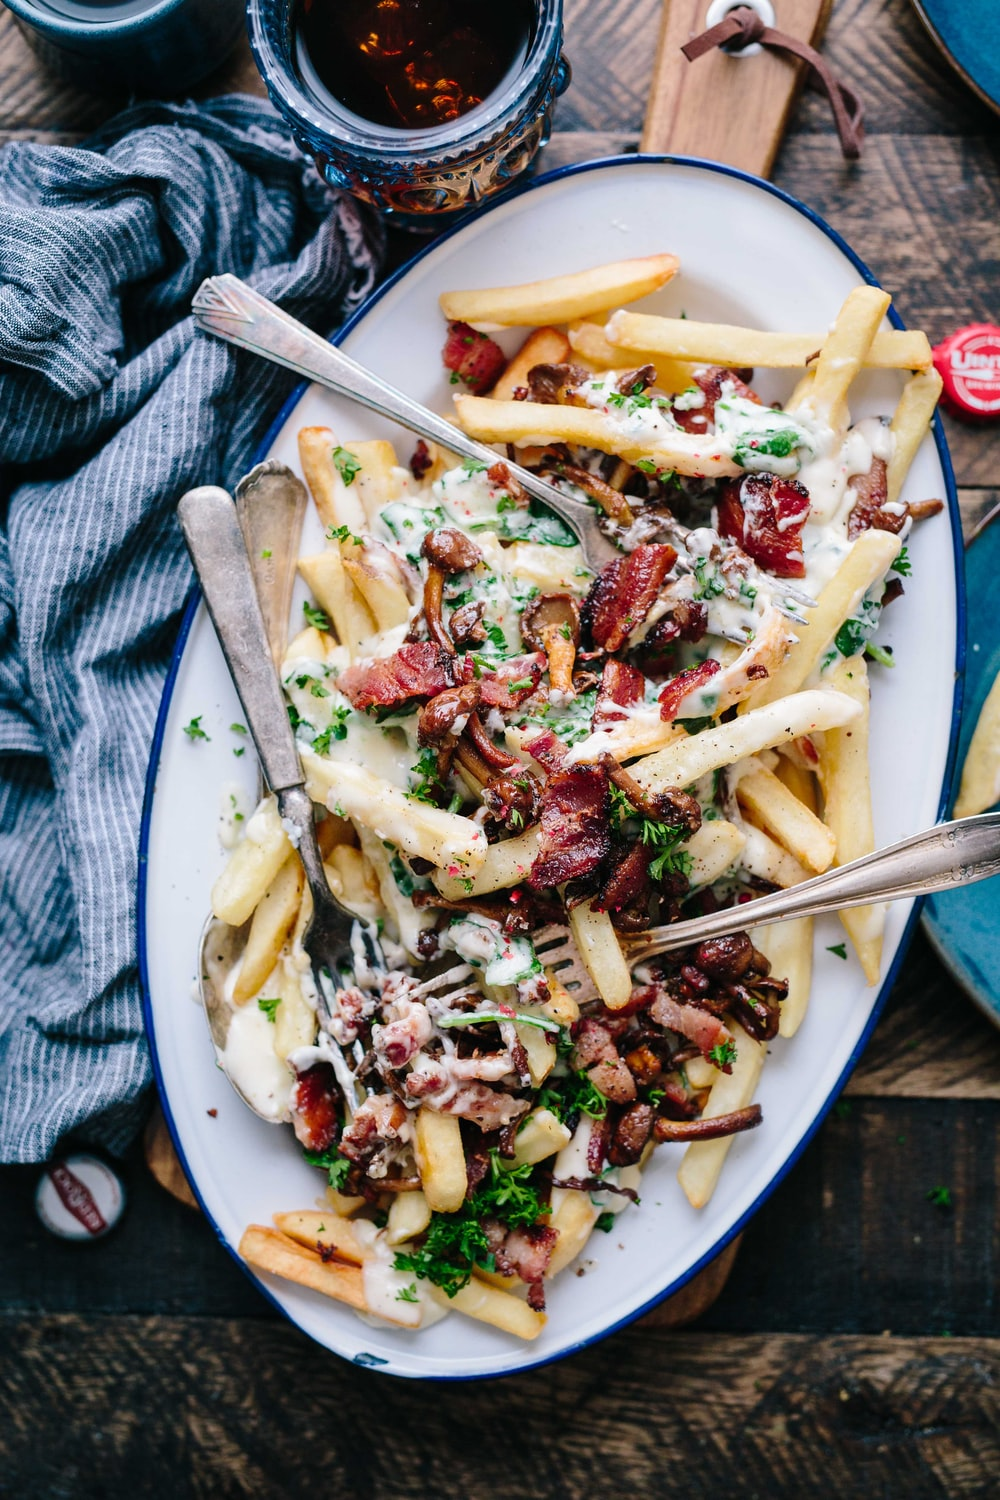 bacon strips and melted cheese topped fries on oval white and blue platter with gray stainless steel forks